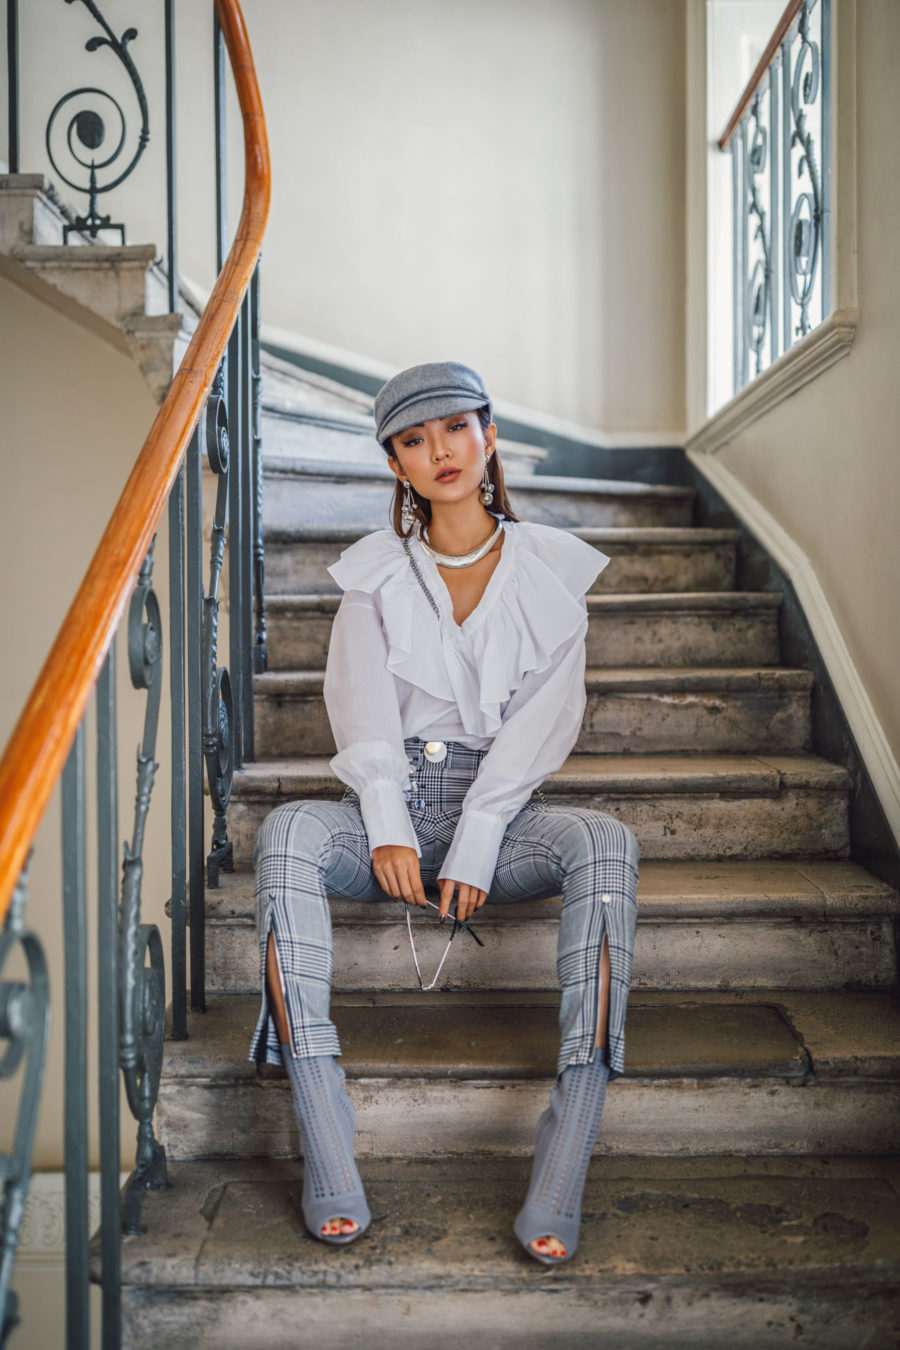 jessica wang wearing a white ruffle shirt, gray plaid pants, and peep toe ankle boots while sharing her favorite out of the box accessories to elevate your outfits // Jessica Wang - Notjessfashion.com